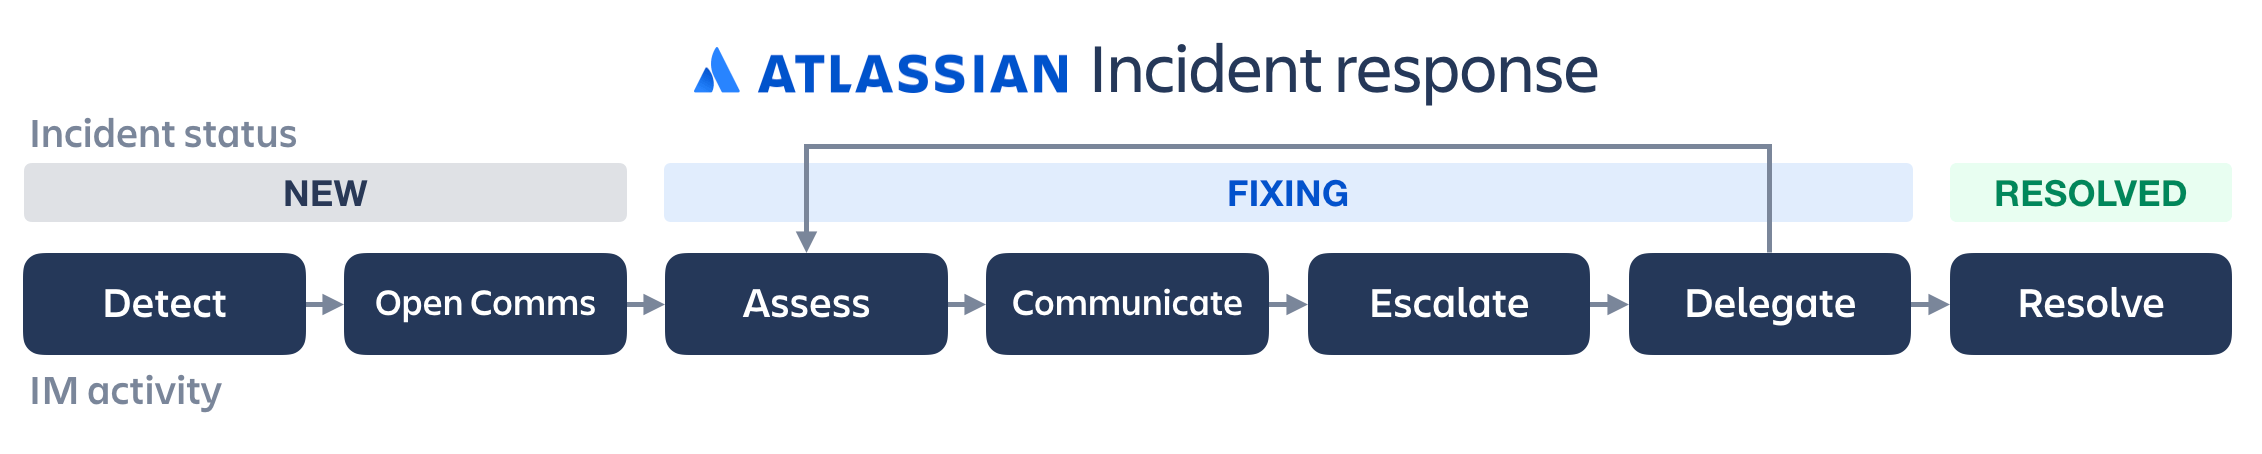 Incident response workflow